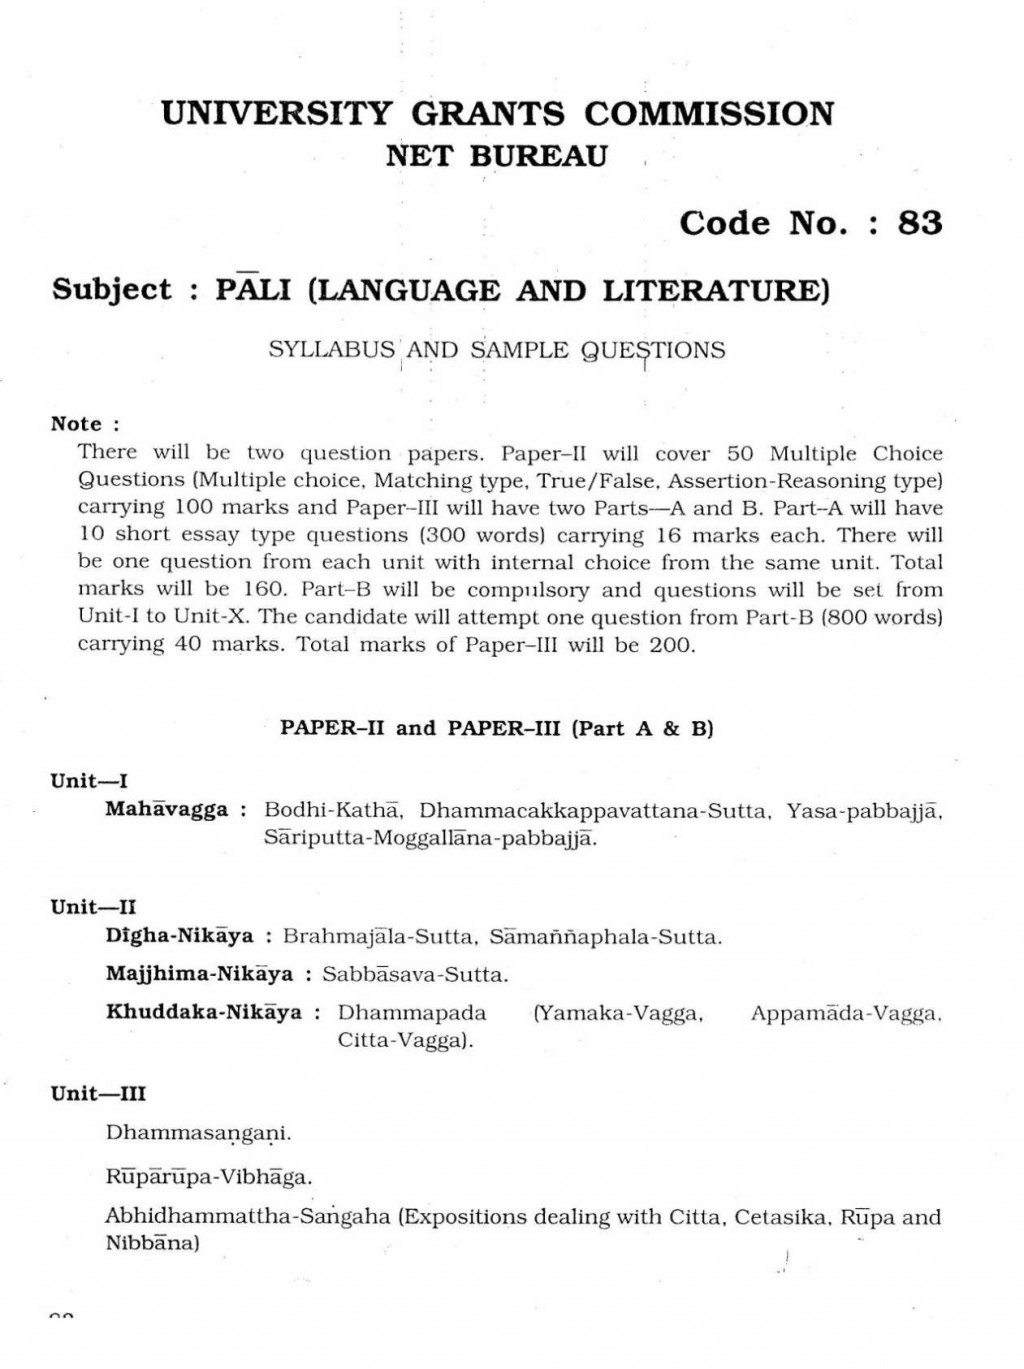 014 Ugc National Eligibility Test Pali Syllabus Teen Pregnancy Essay Amazing Teenage Pdf Body Introduction In The Philippines Large